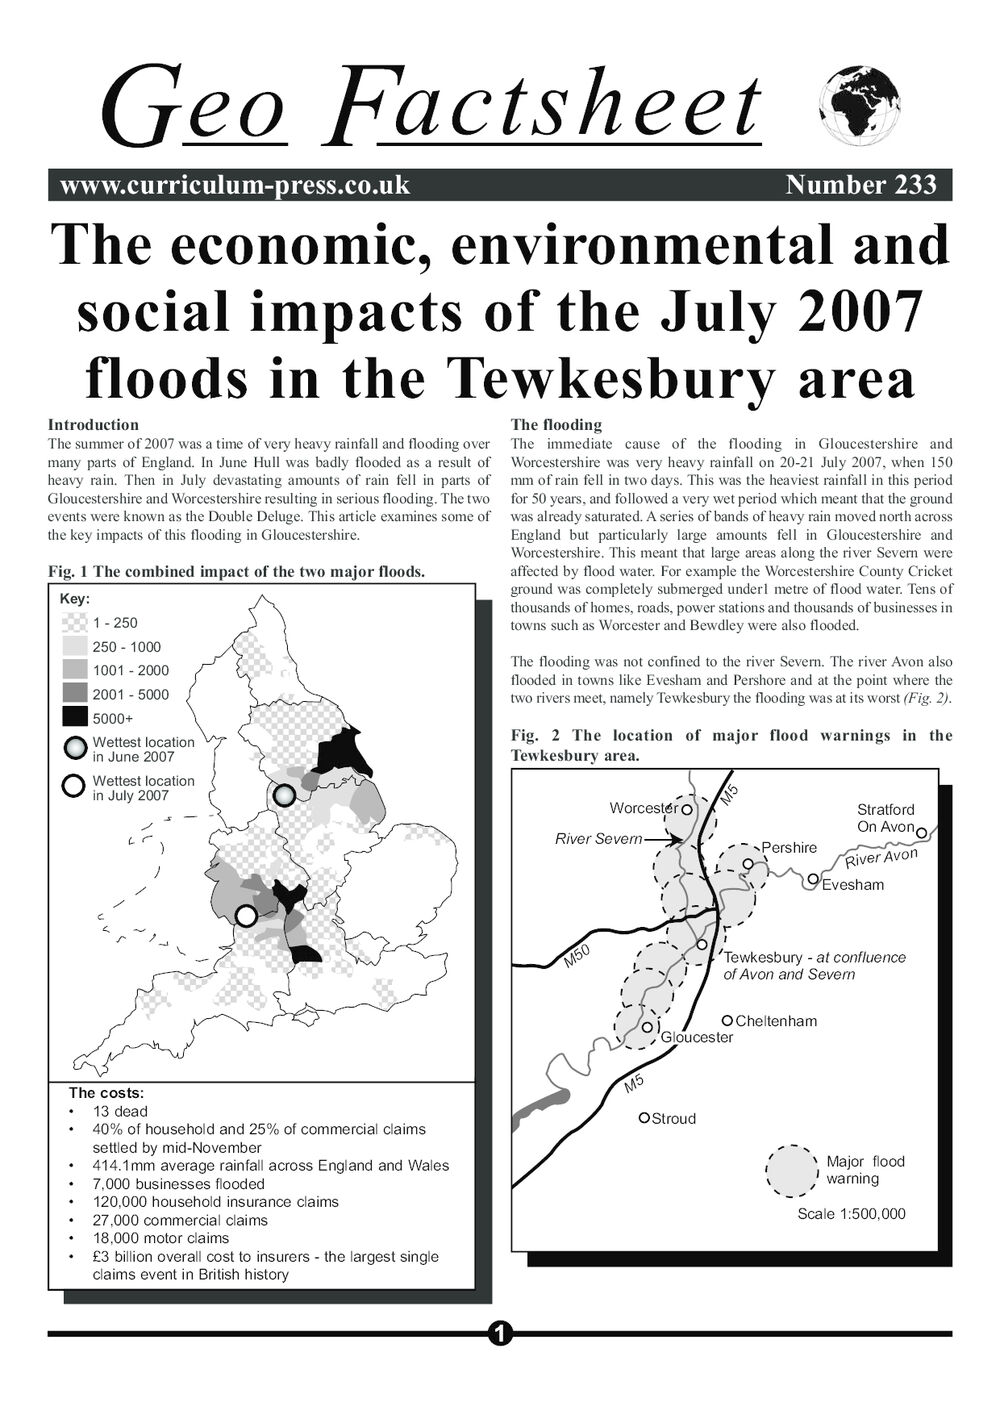 The Economic, Environmental and Social Impacts of the July 2007